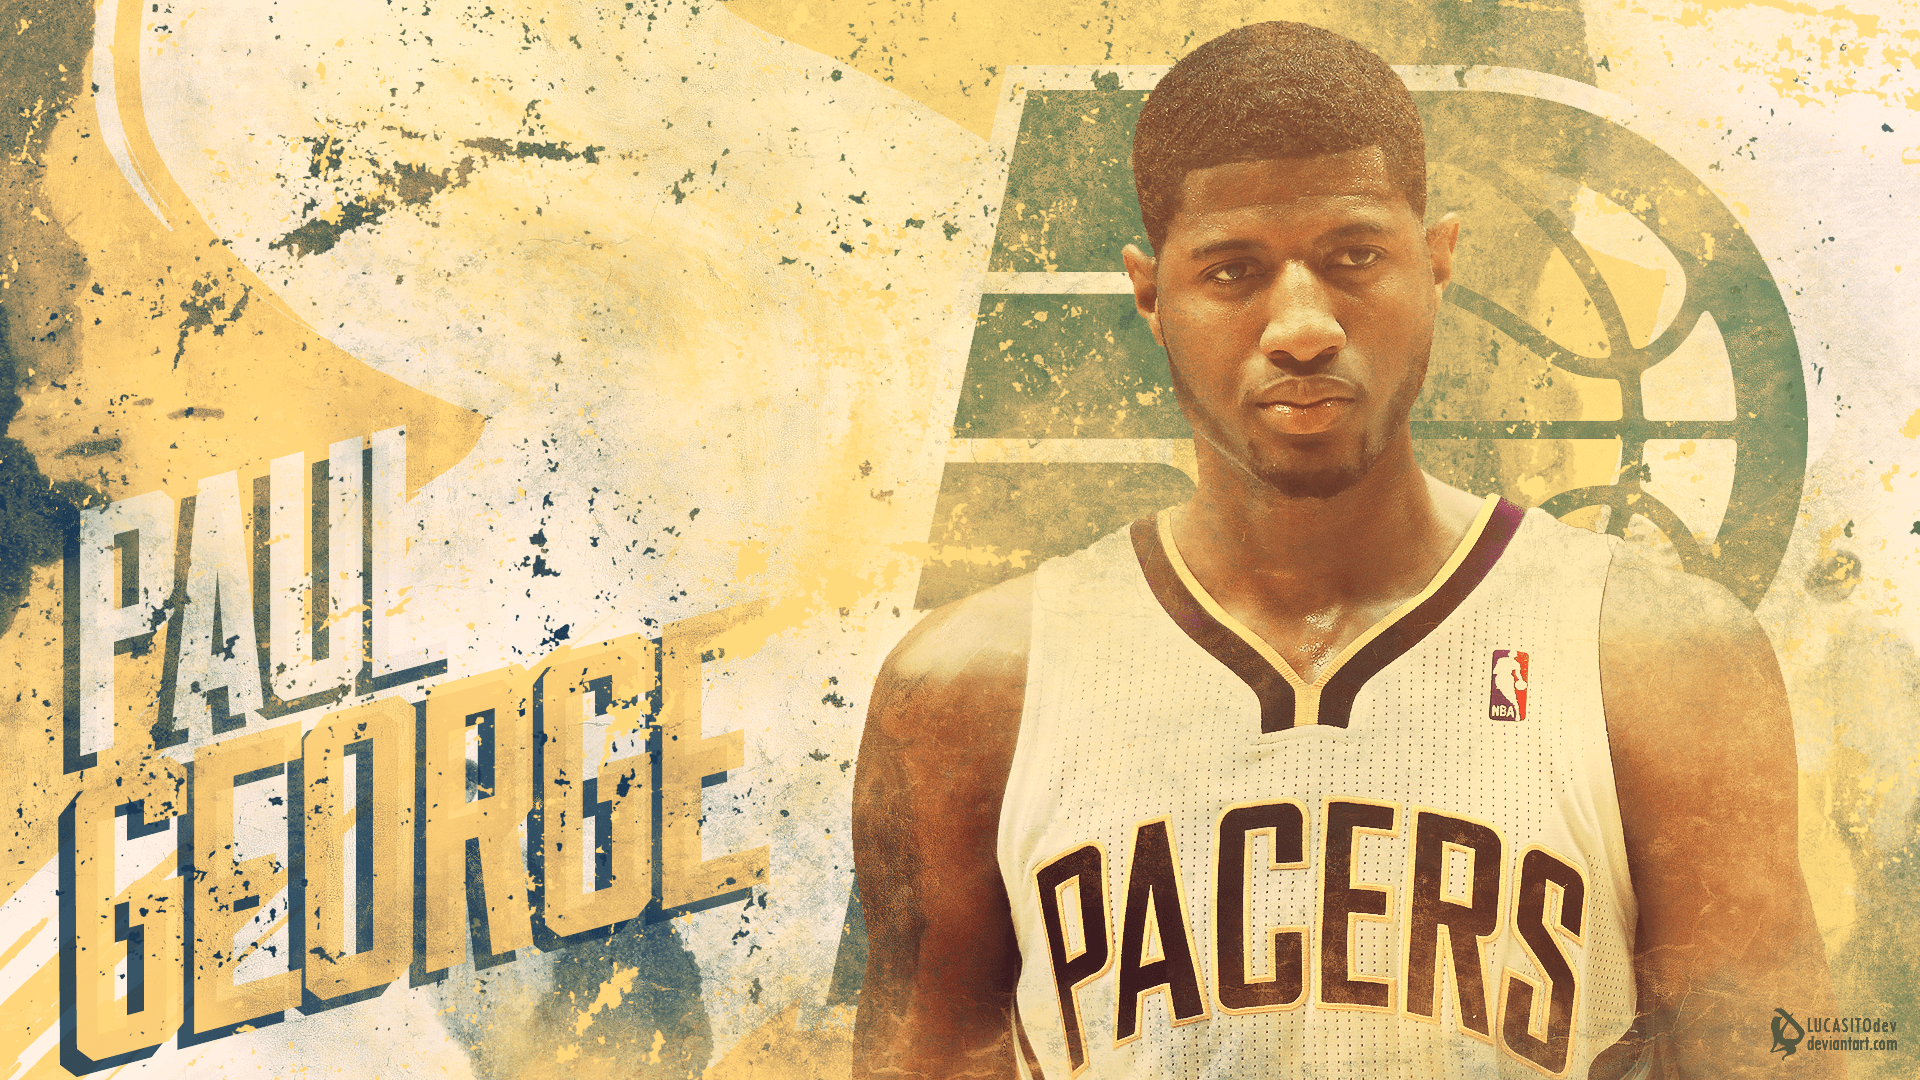 Paul George 13 Wallpaper - WallpaperSafari